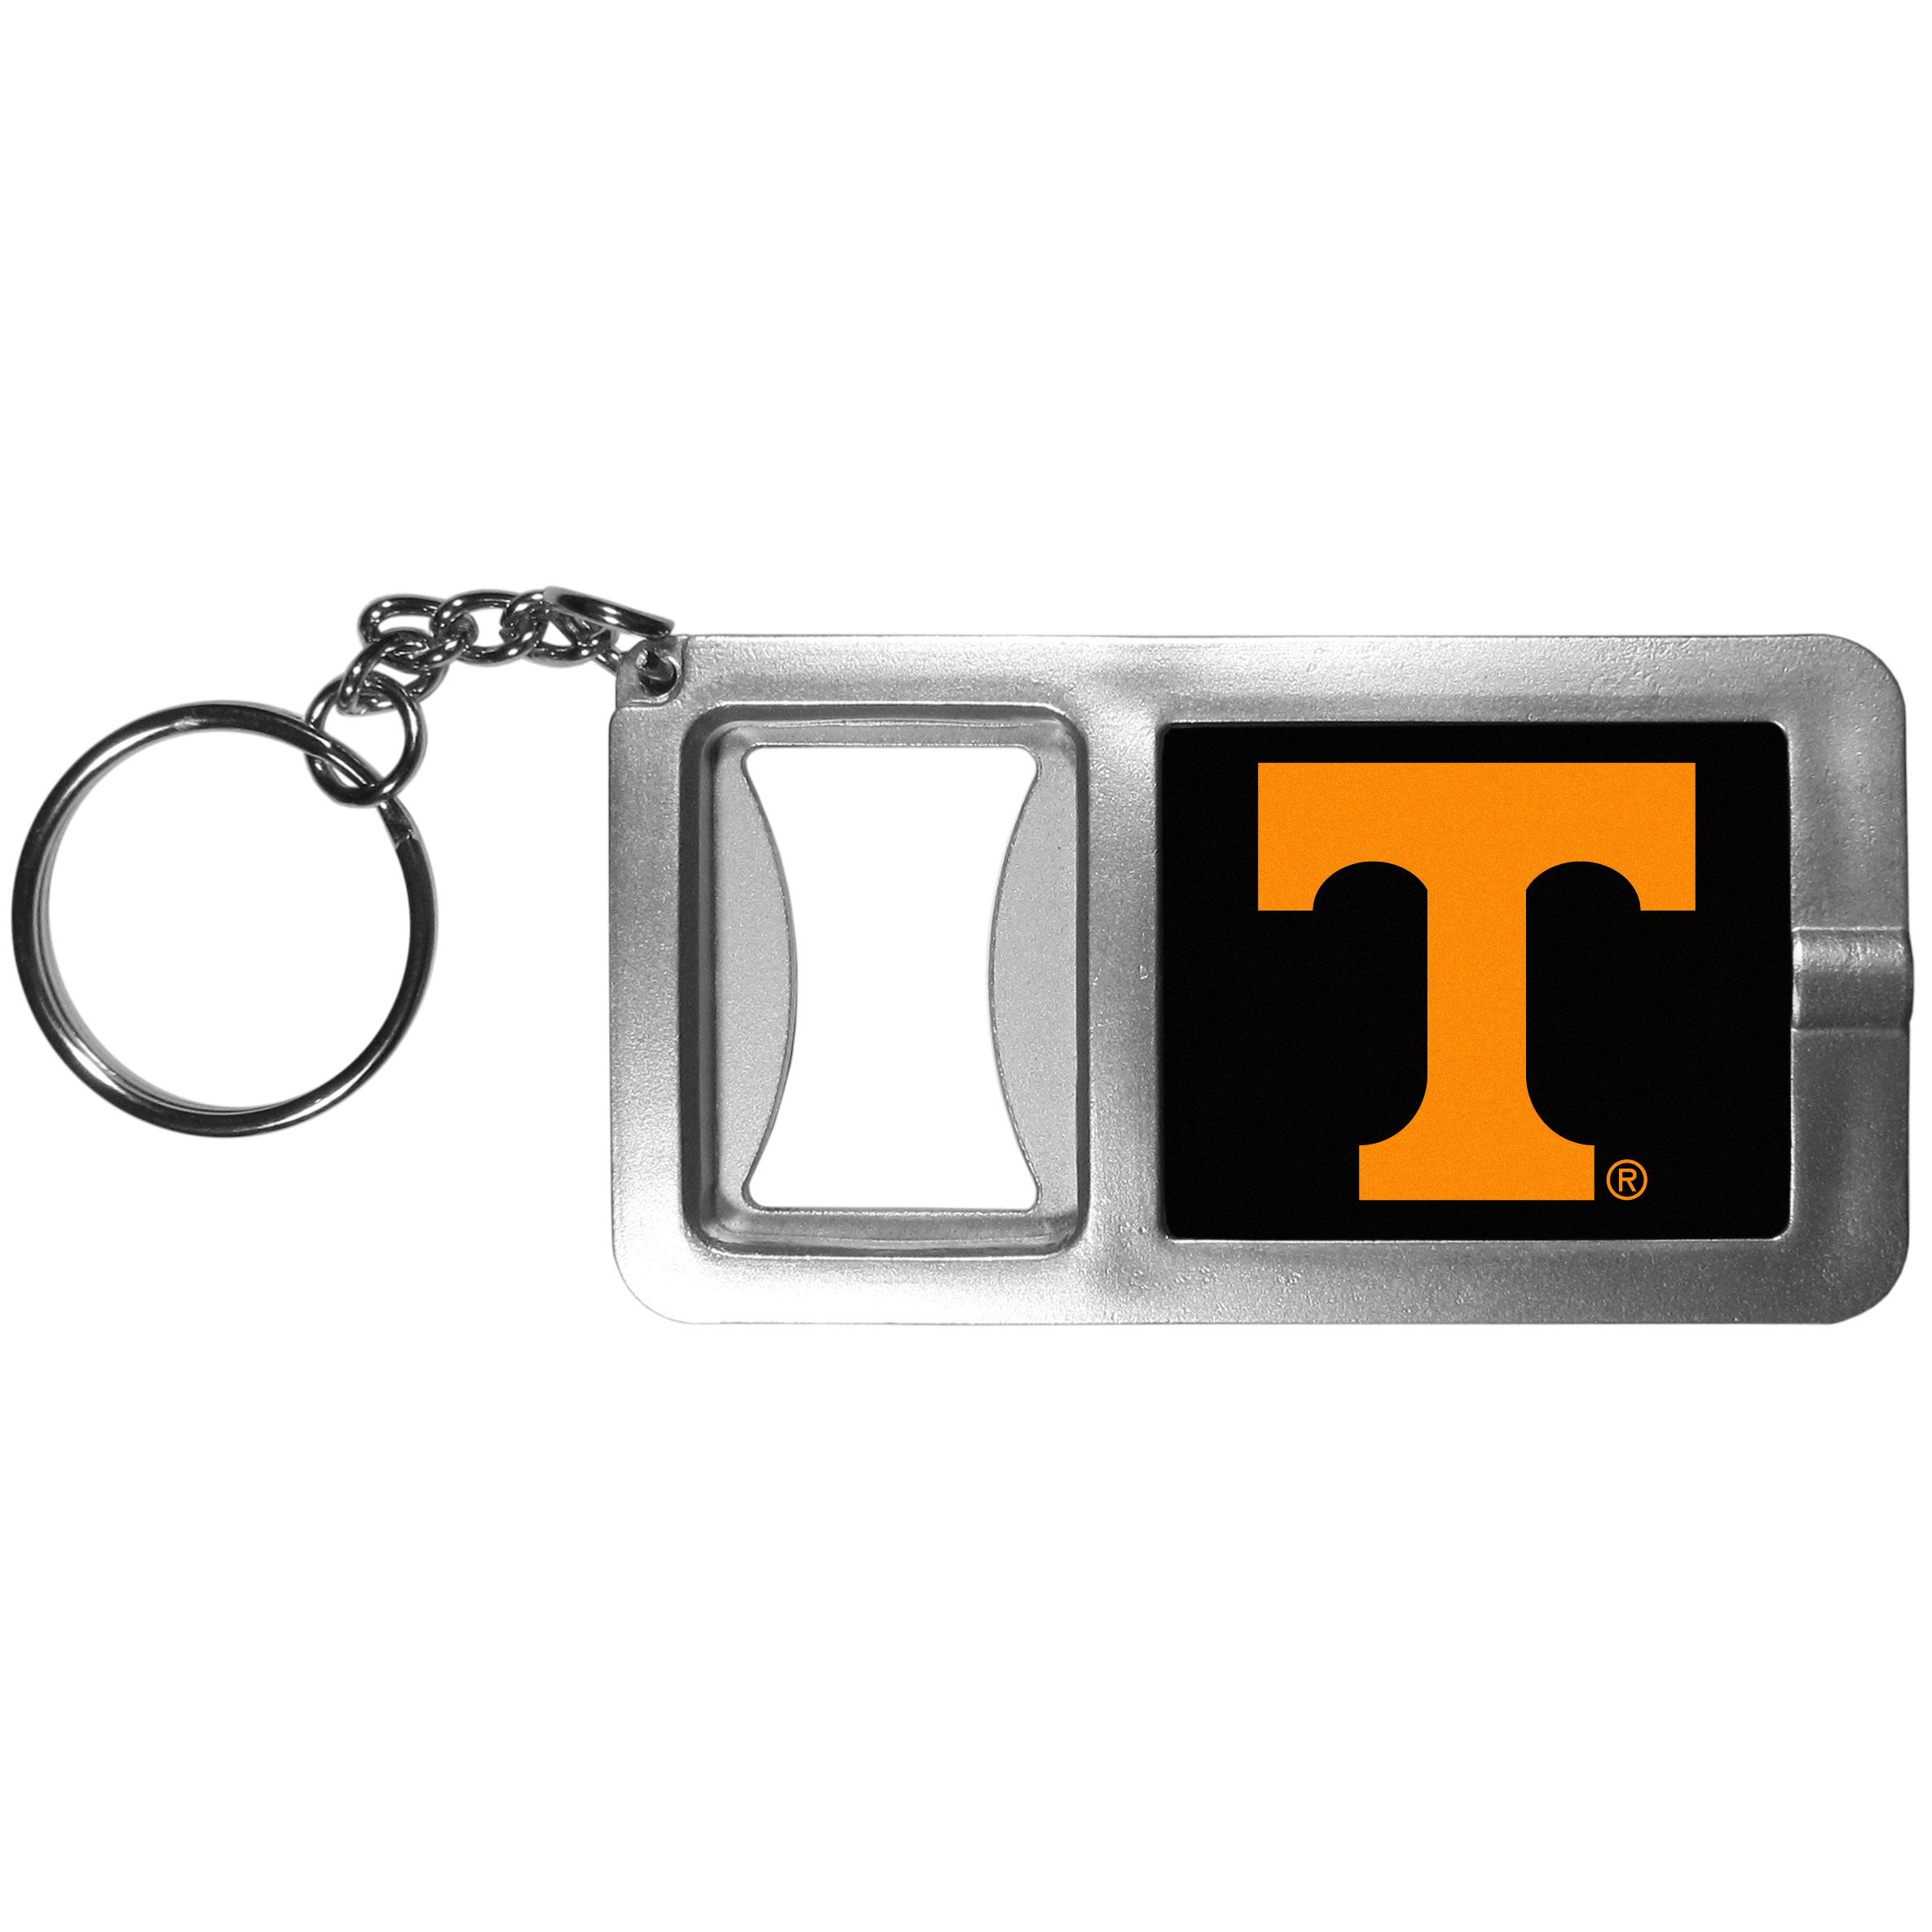 Tennessee Volunteers Flashlight Key Chain with Bottle Opener - Never be without light with our Tennessee Volunteers flashlight keychain that features a handy bottle opener feature. This versatile key chain is perfect for camping and travel and is a great way to show off your team pride!